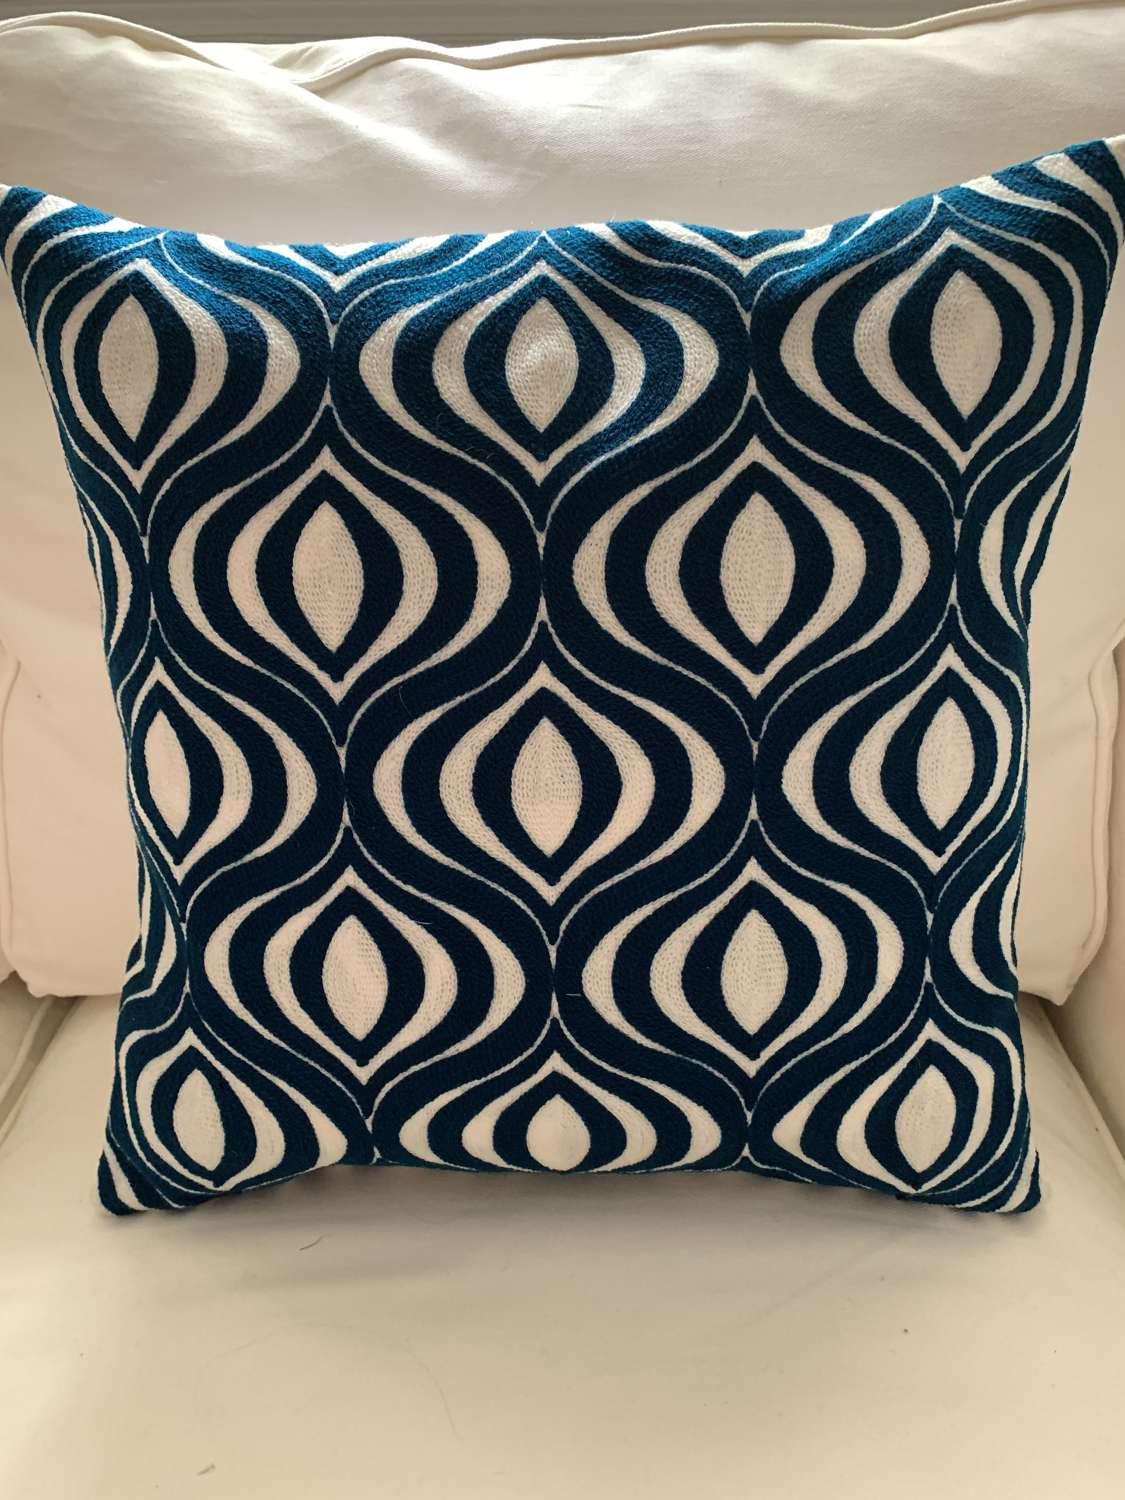 Petrol blue crewel work cushion with feather pad